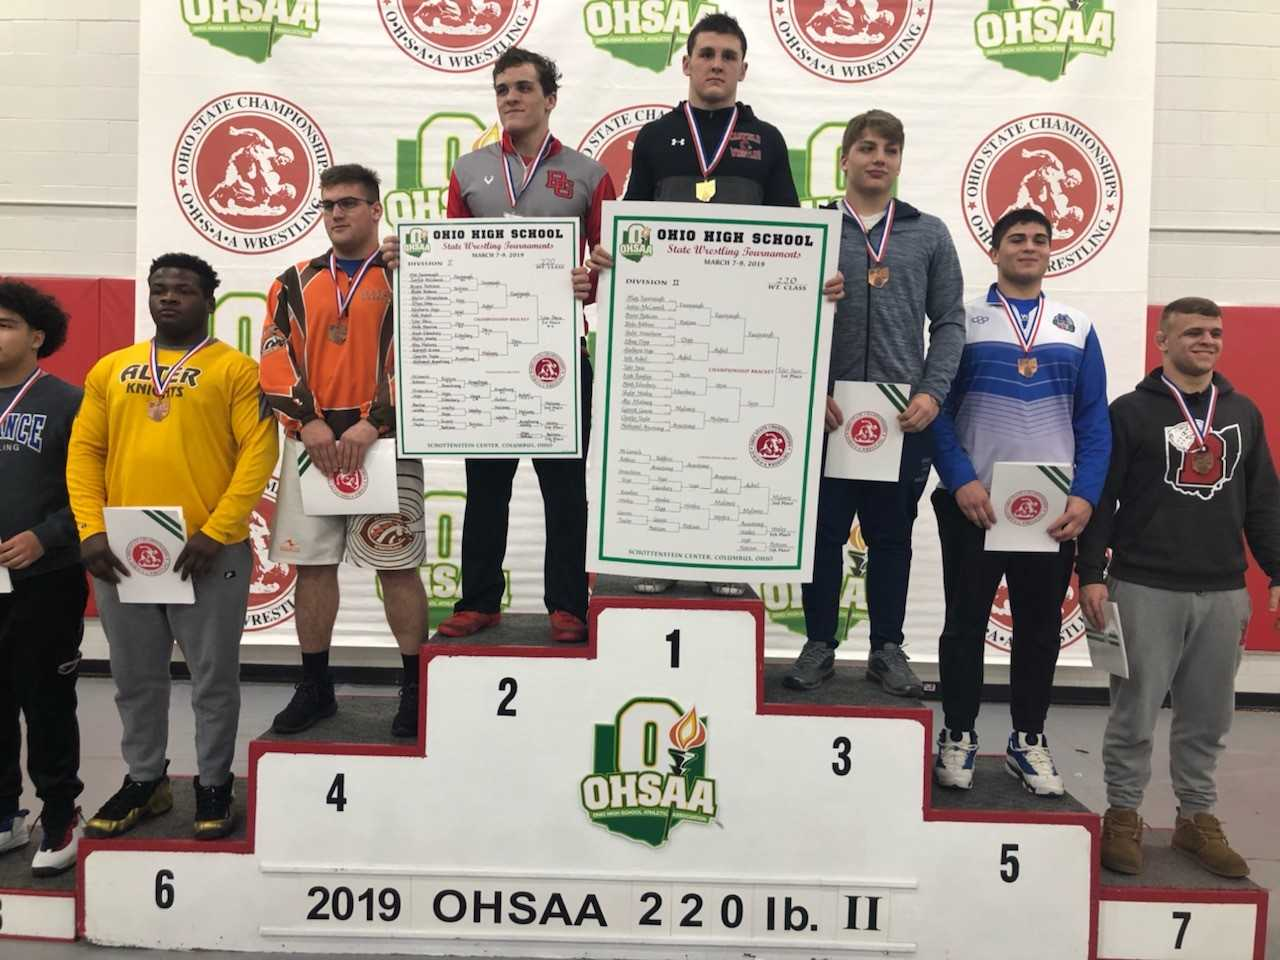 Bruno Pattison Places Seventh in State Wrestling Meet